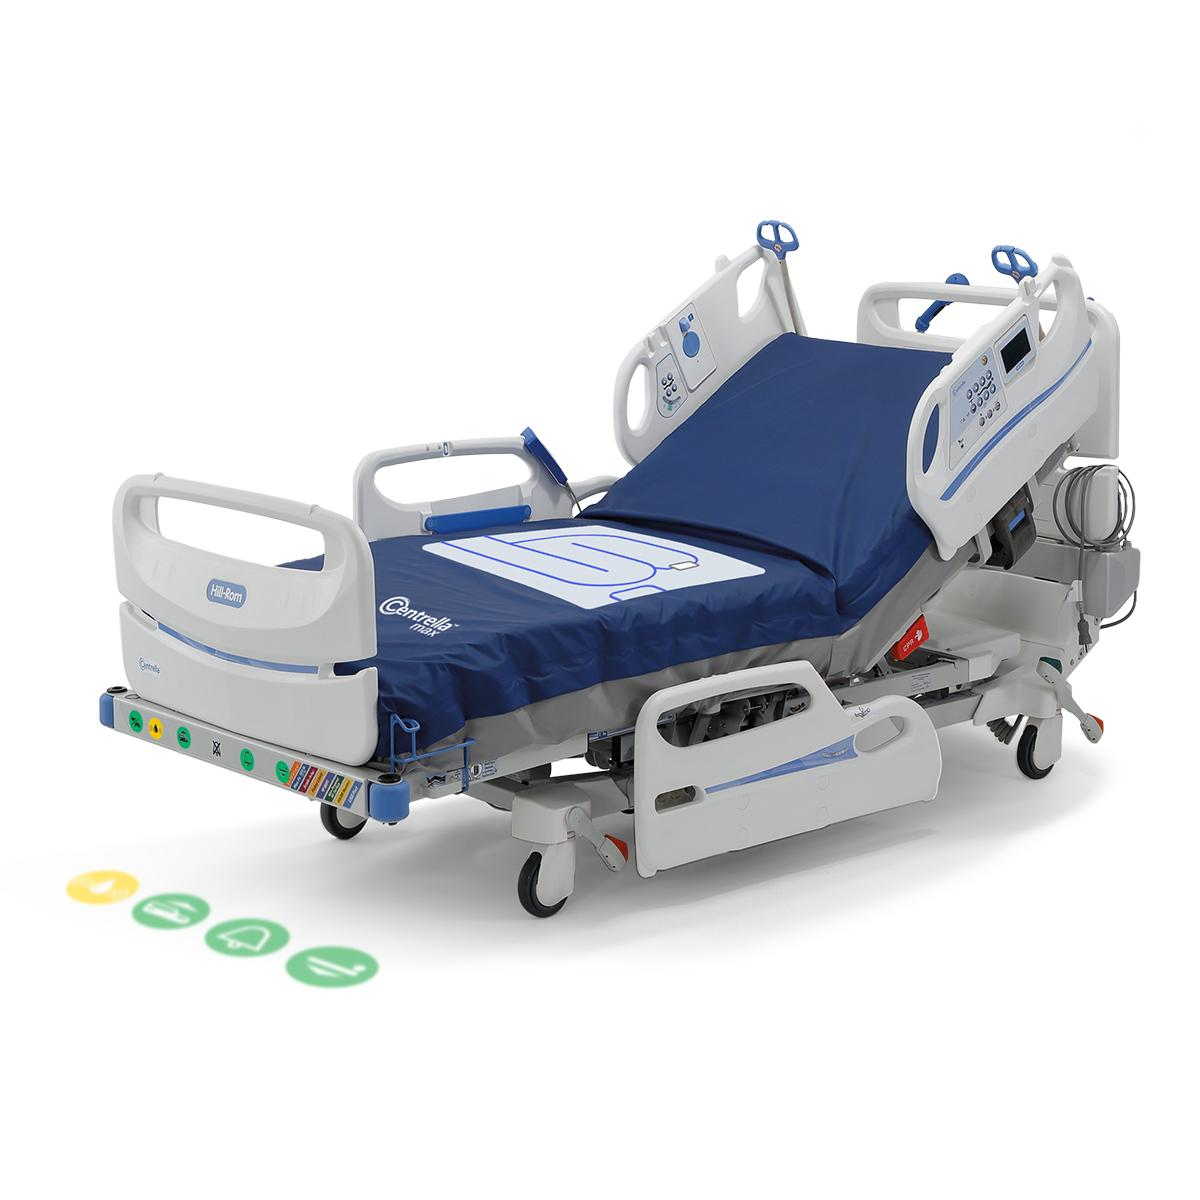 WatchCare Incontinence Management System in use on a Centrella Smart+ Bed. WatchCare Alert light is displayed in yellow.